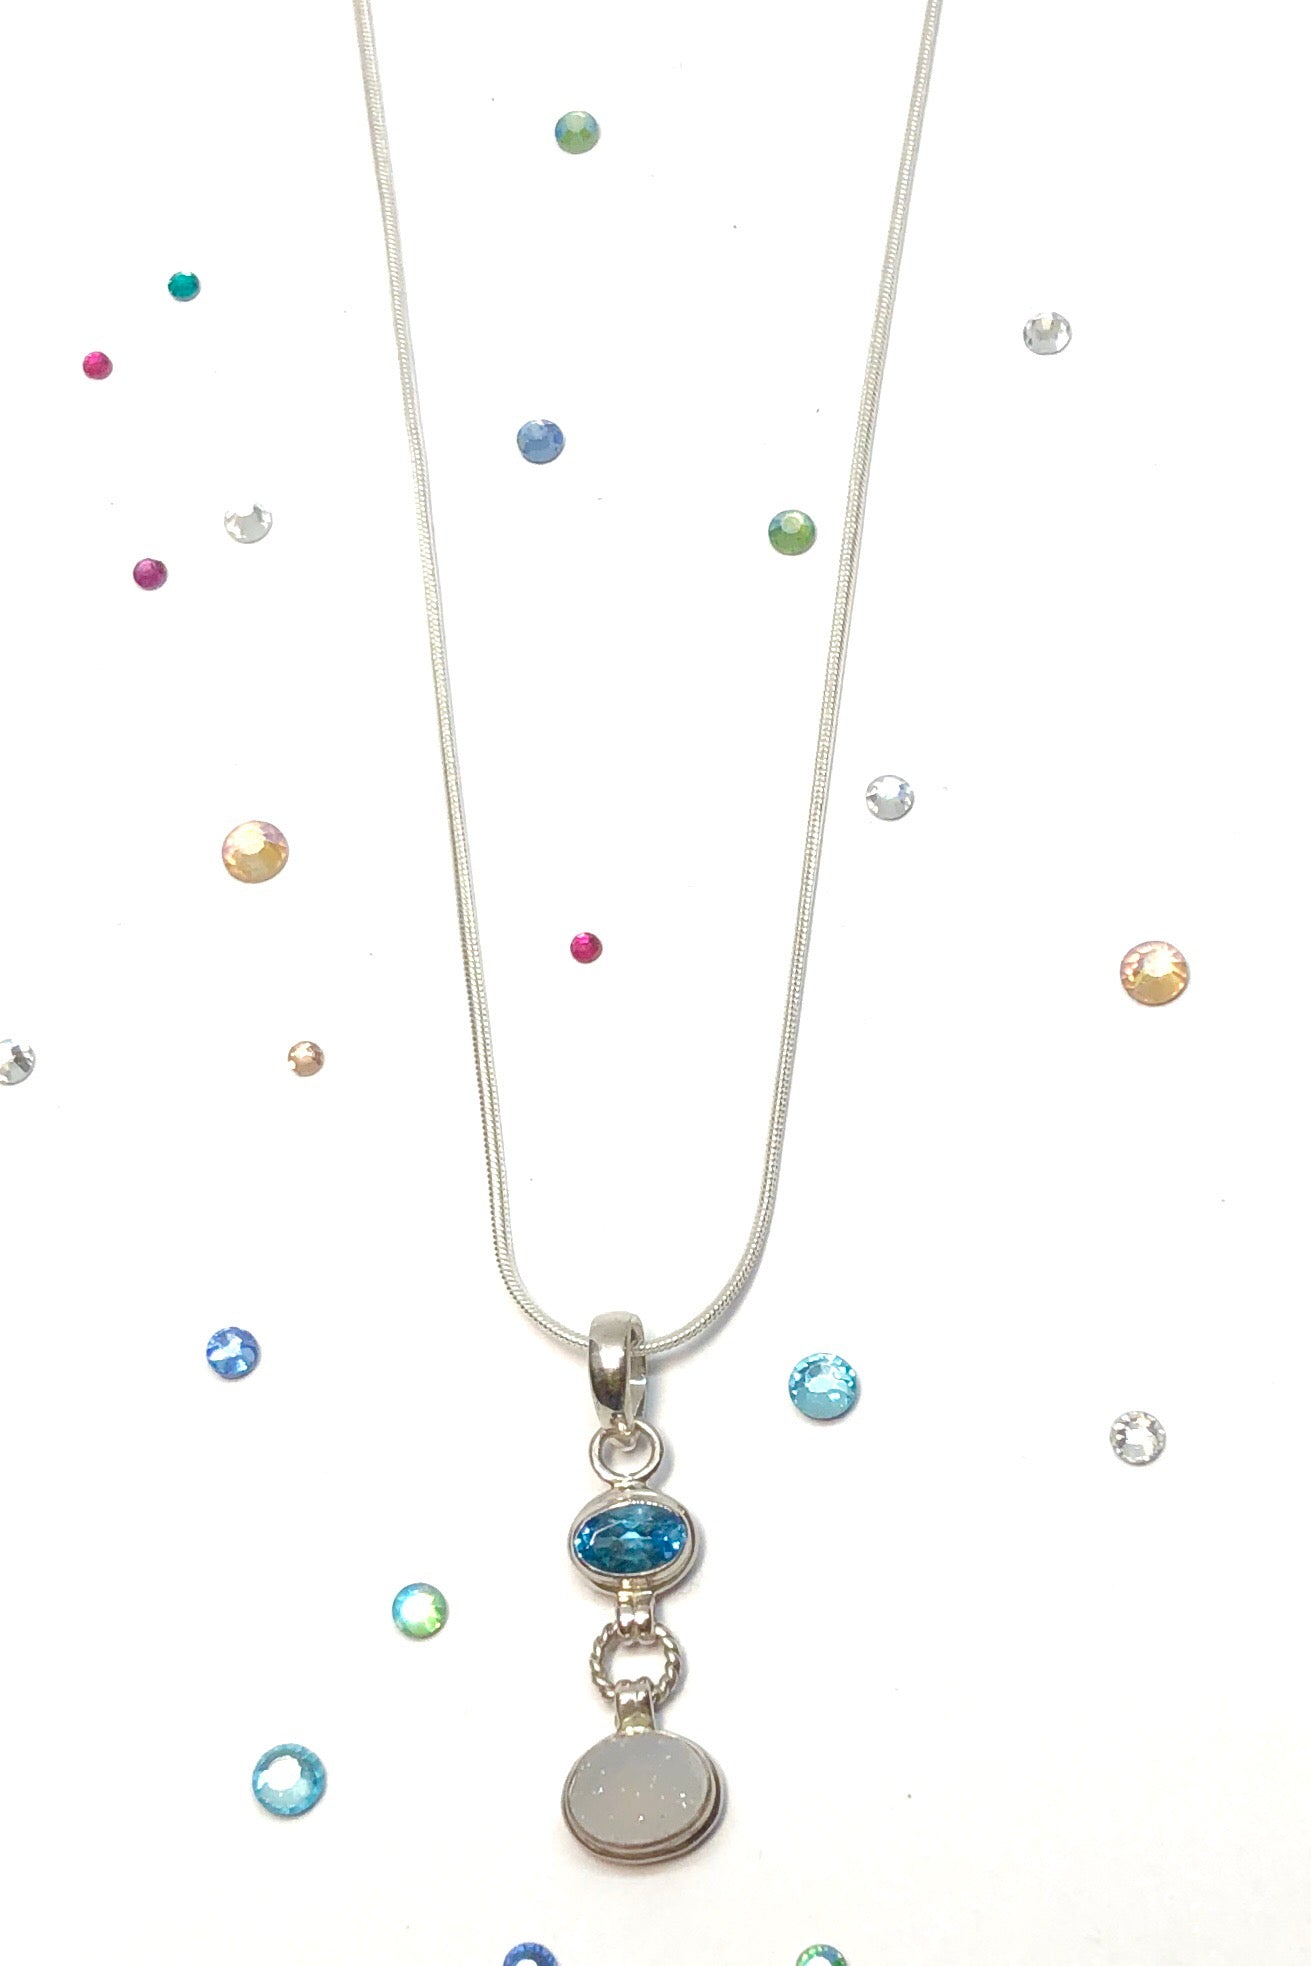 Absolutely adrable, our Echo Gem Pendant Little Druzy comes on 925 silver chain and features agate Druzy stone and London Blue Topaz gemstone pendant hanging from a fine silver snake chain.